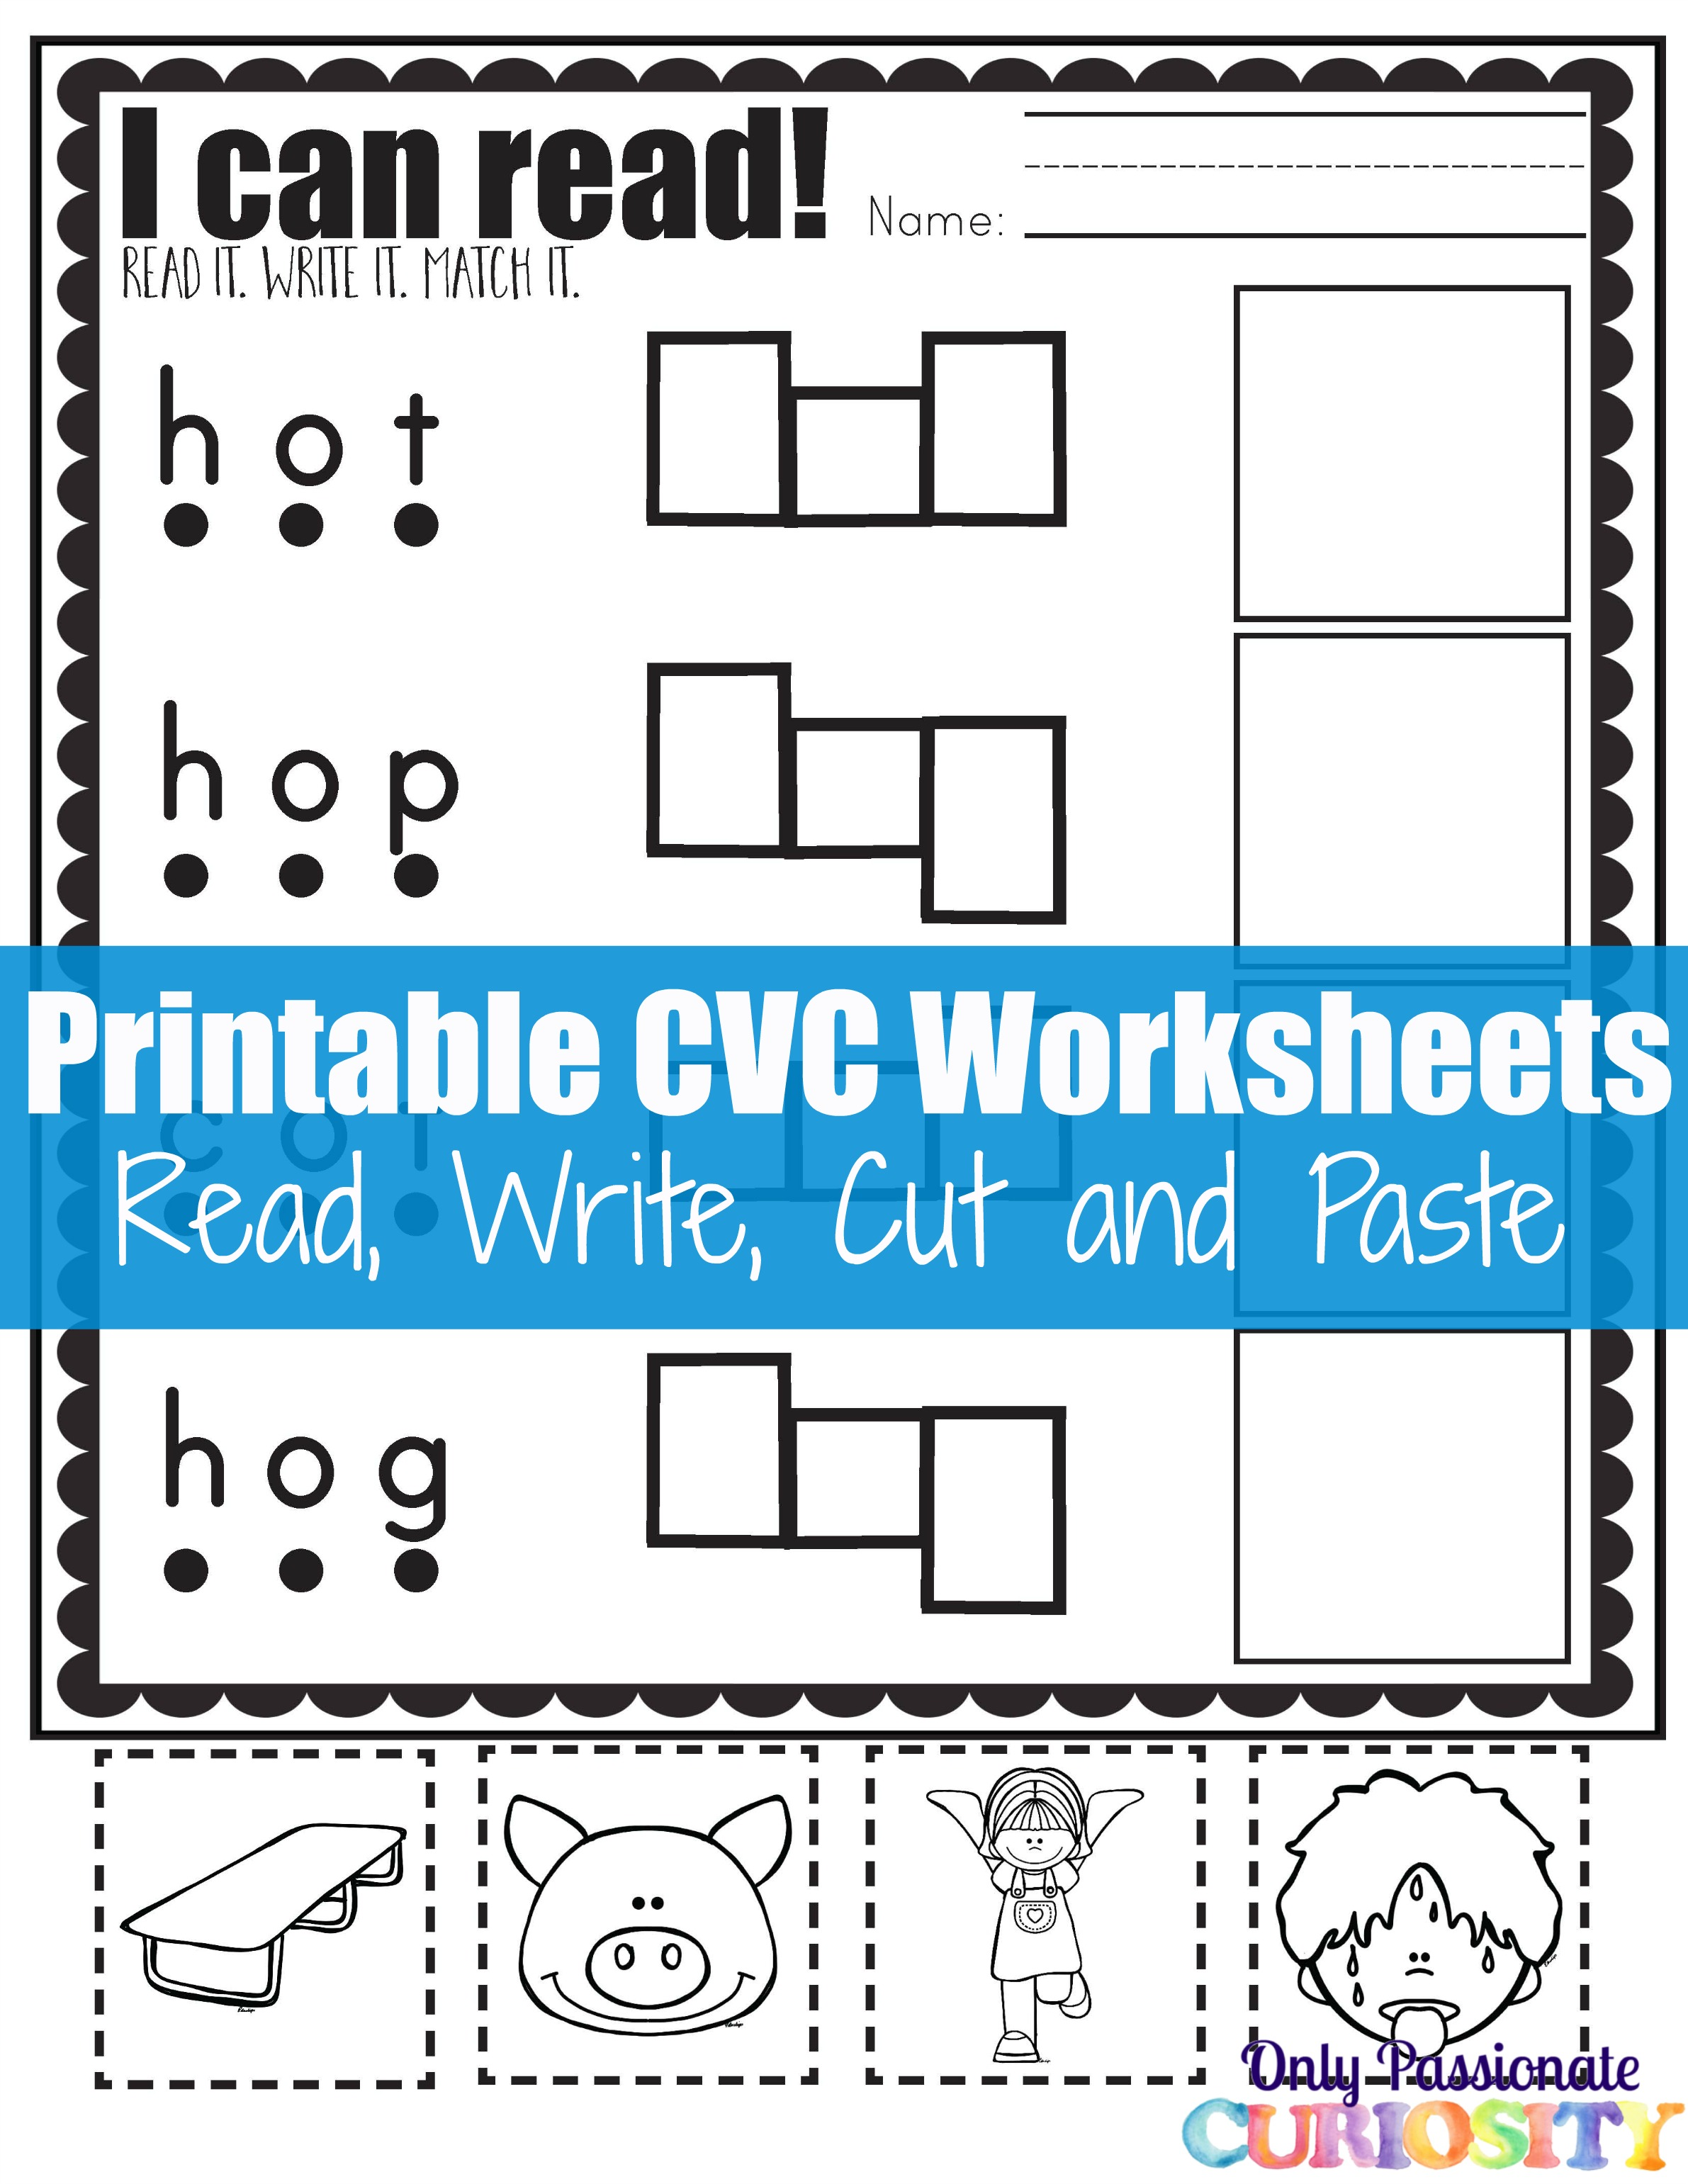 Worksheets Cvc Worksheets cvc worksheets cut and paste letter o only passionate curiosity worksheets